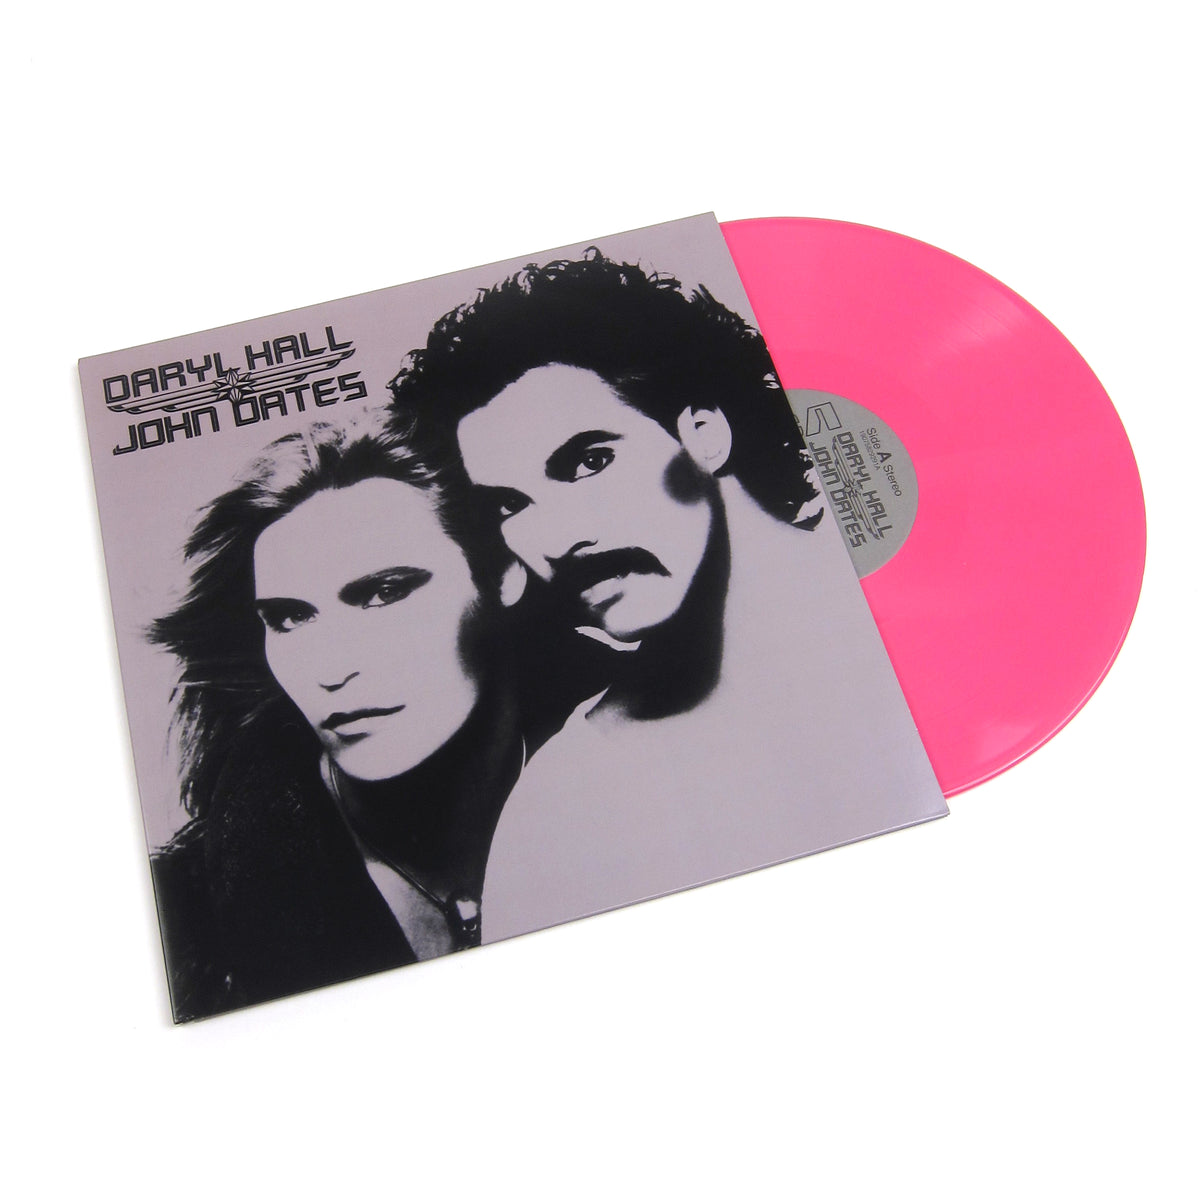 Daryl Hall & John Oates: Daryl Hall & John Oates (Pink Colored Vinyl) Vinyl LP